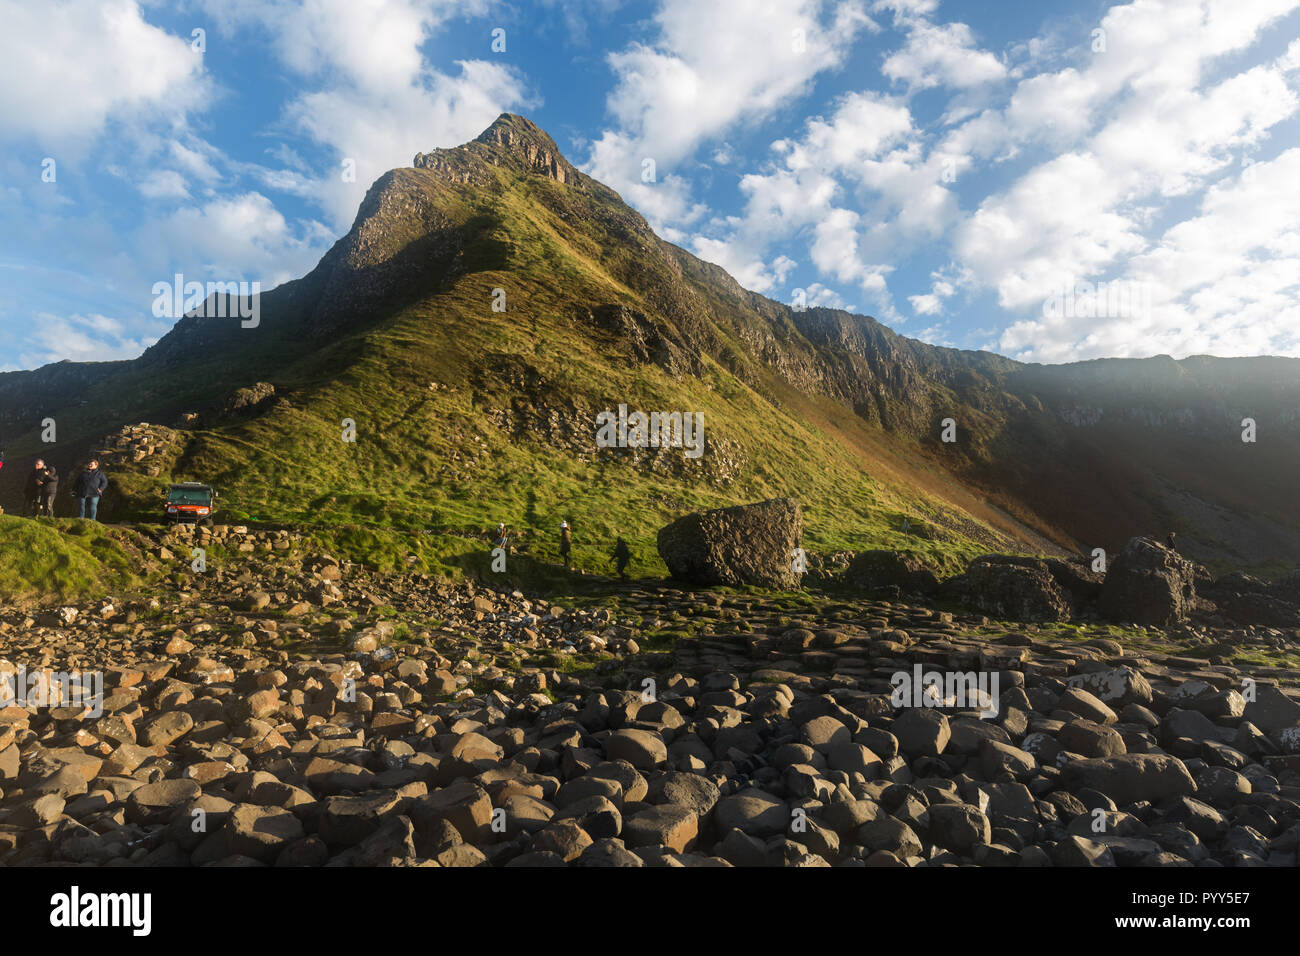 Looking back from the Causeway to the headland behind in bright sunshine with blue skies and white clouds. Giants Causeway, County Antrim, N.Ireland. - Stock Image